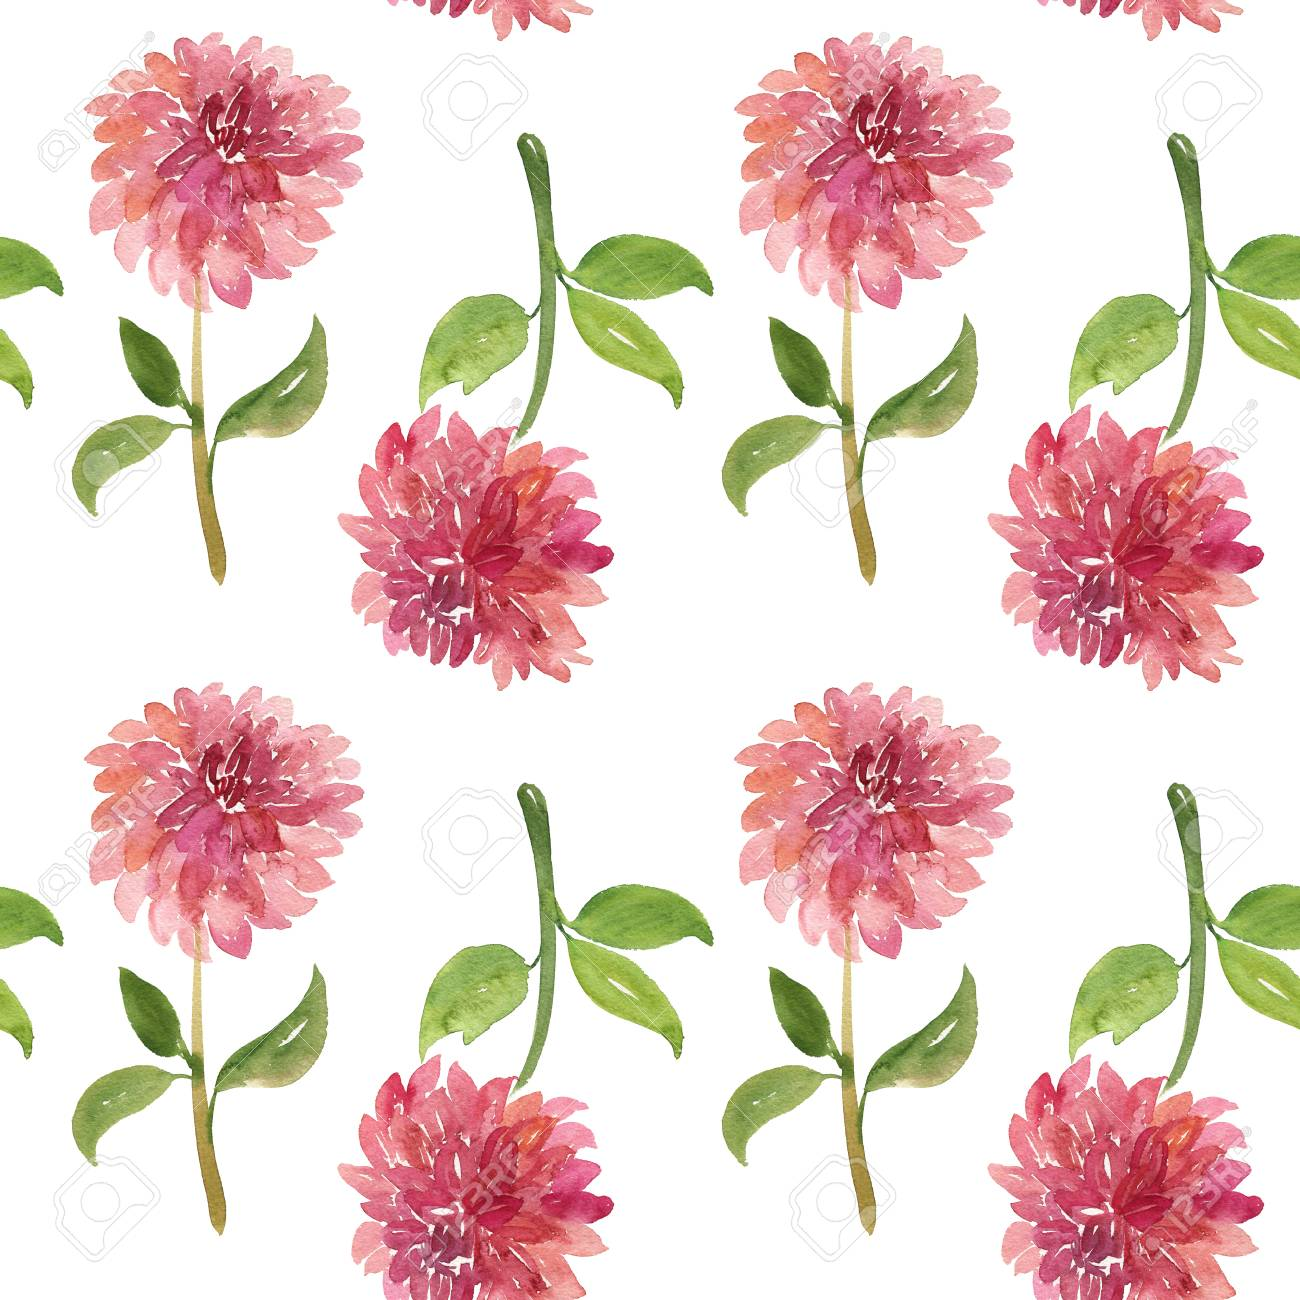 Seamless Pattern Of Red Watercolor Dahlia Flowers With Stems Stock Photo Picture And Royalty Free Image Image 102419606